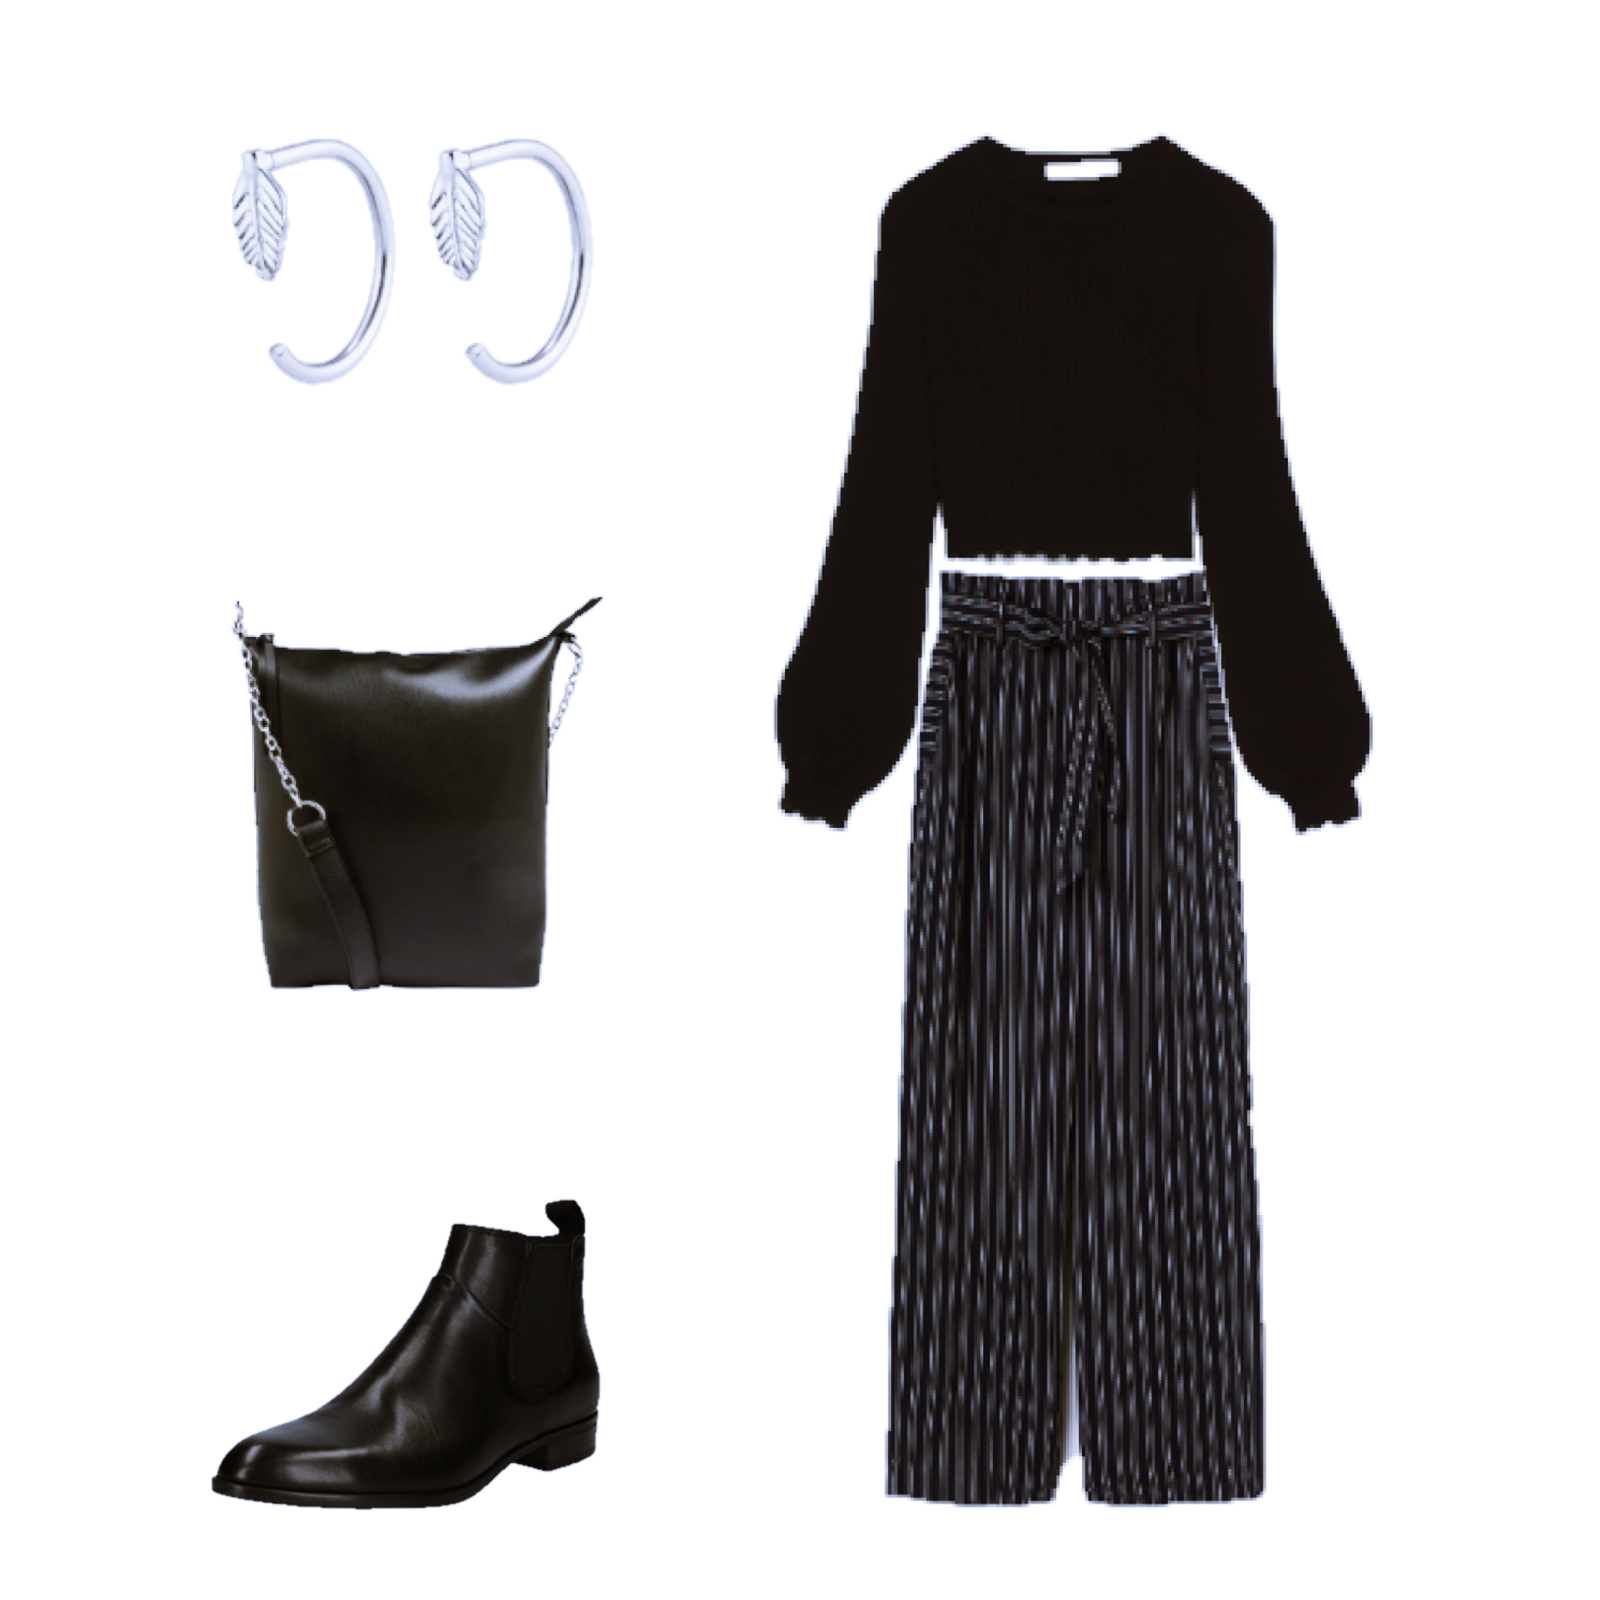 Outfit of the Day: A pair of Striped Pants